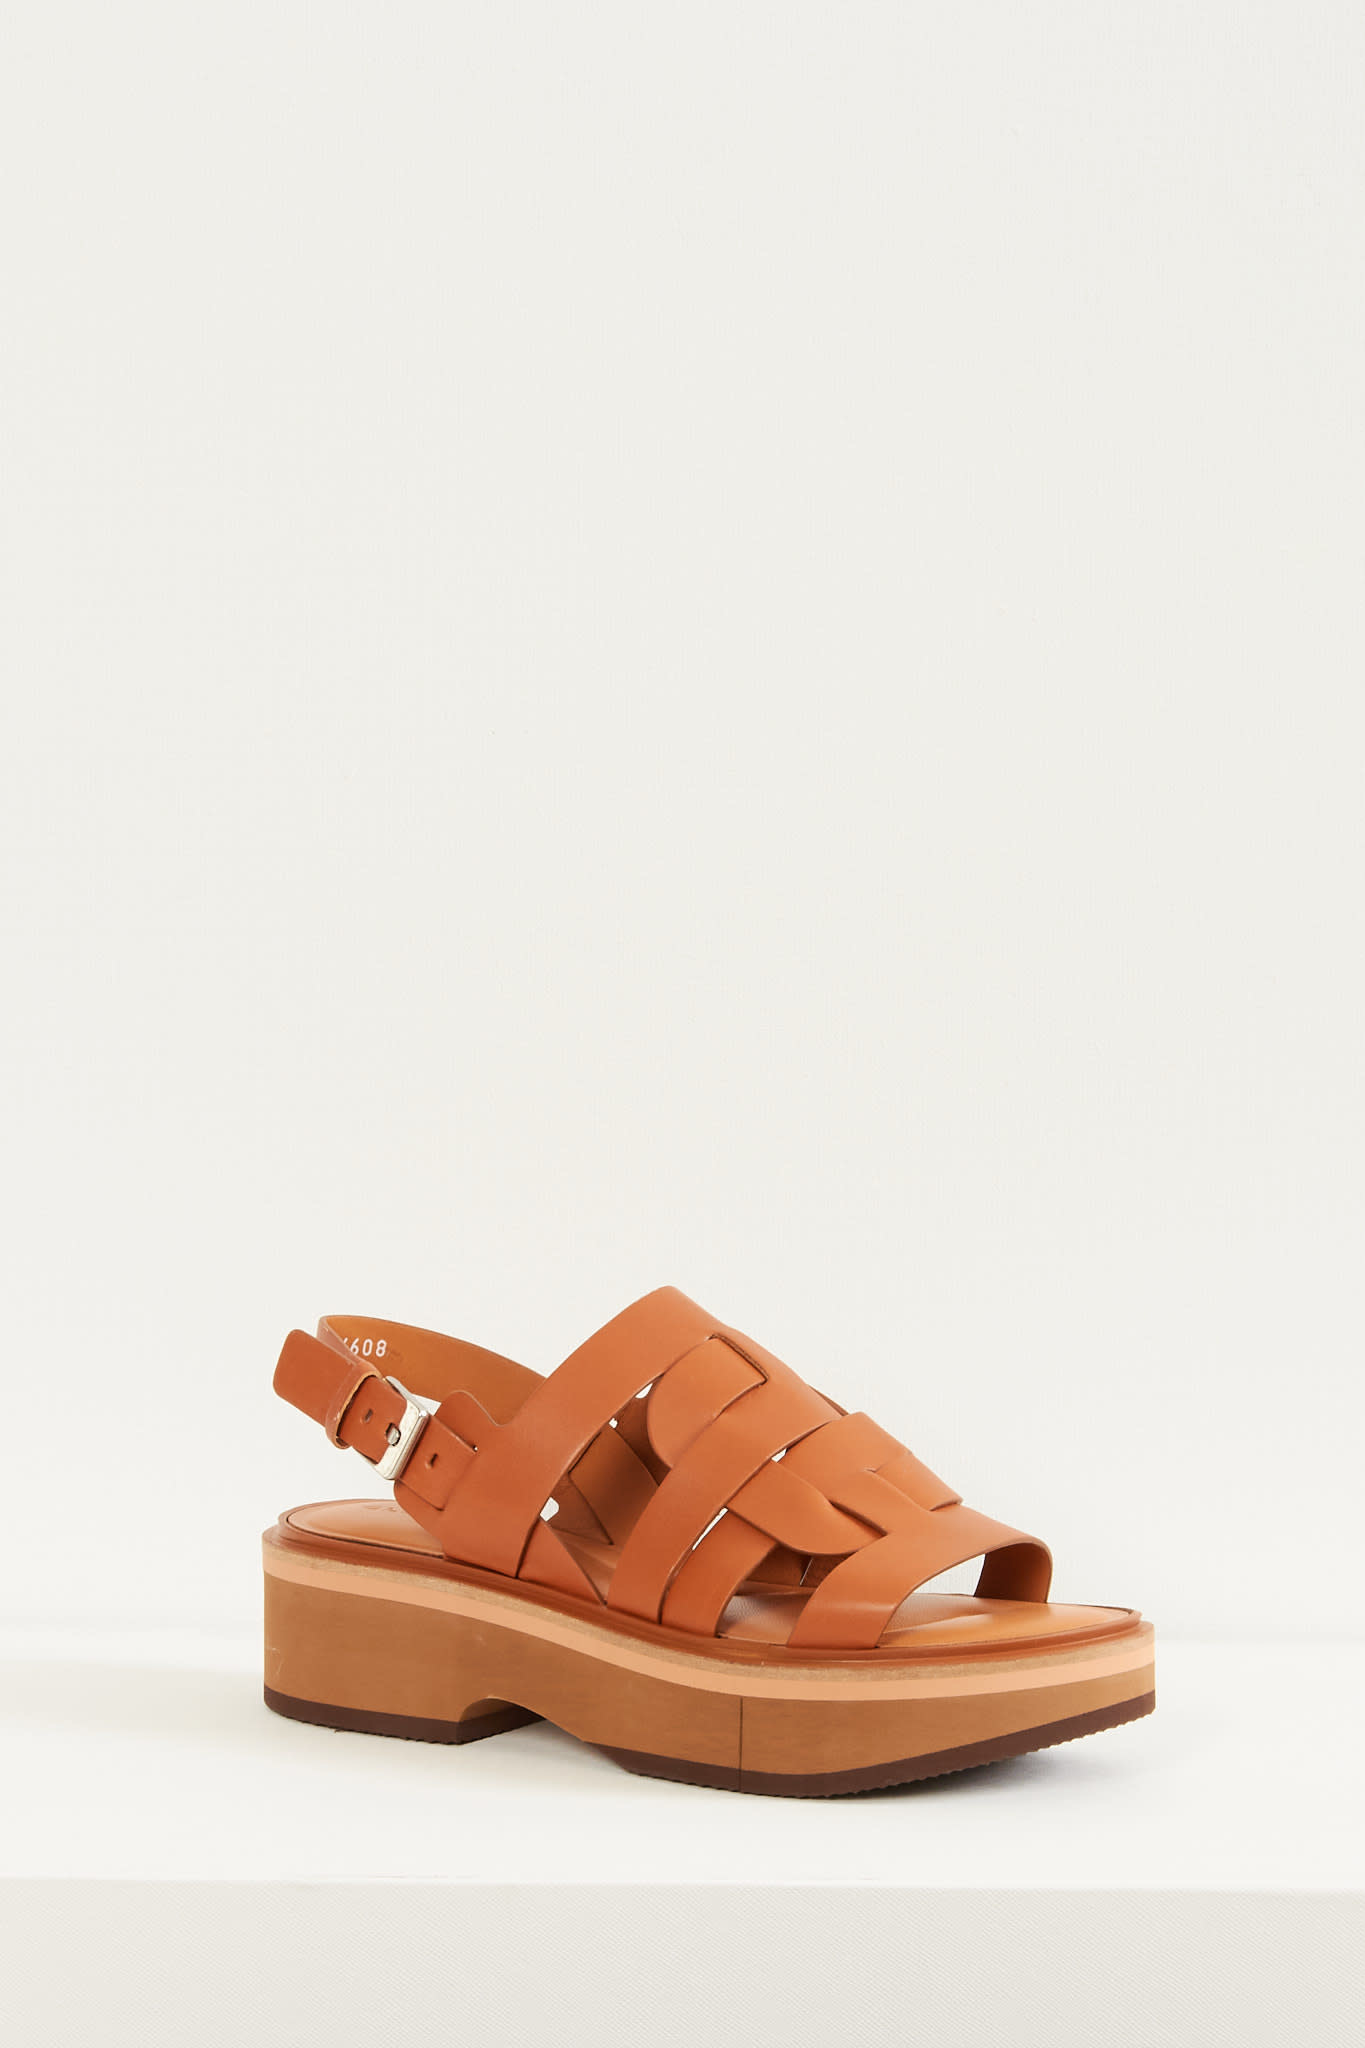 Clergerie Fidji leather sandals